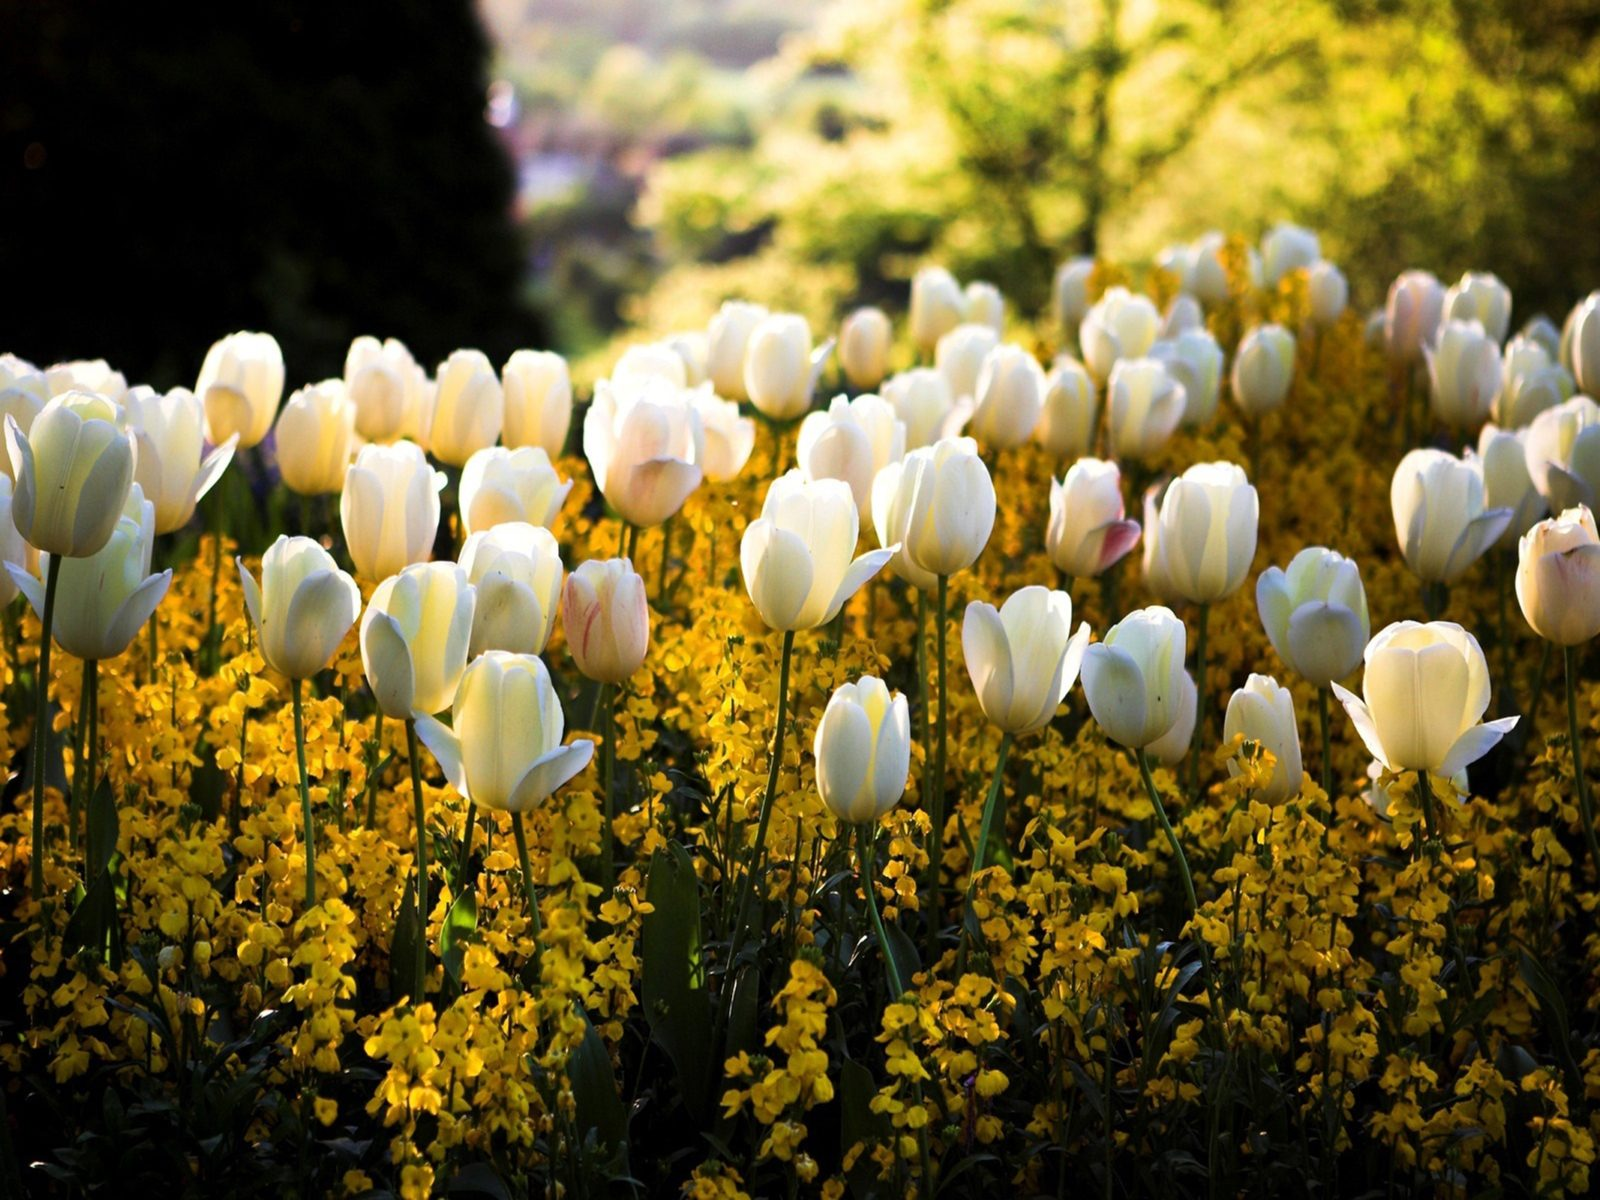 Hd Wallpaper Cars 2015 Spring Park White Tulip Flowers 2560x1600 Wallpapers13 Com